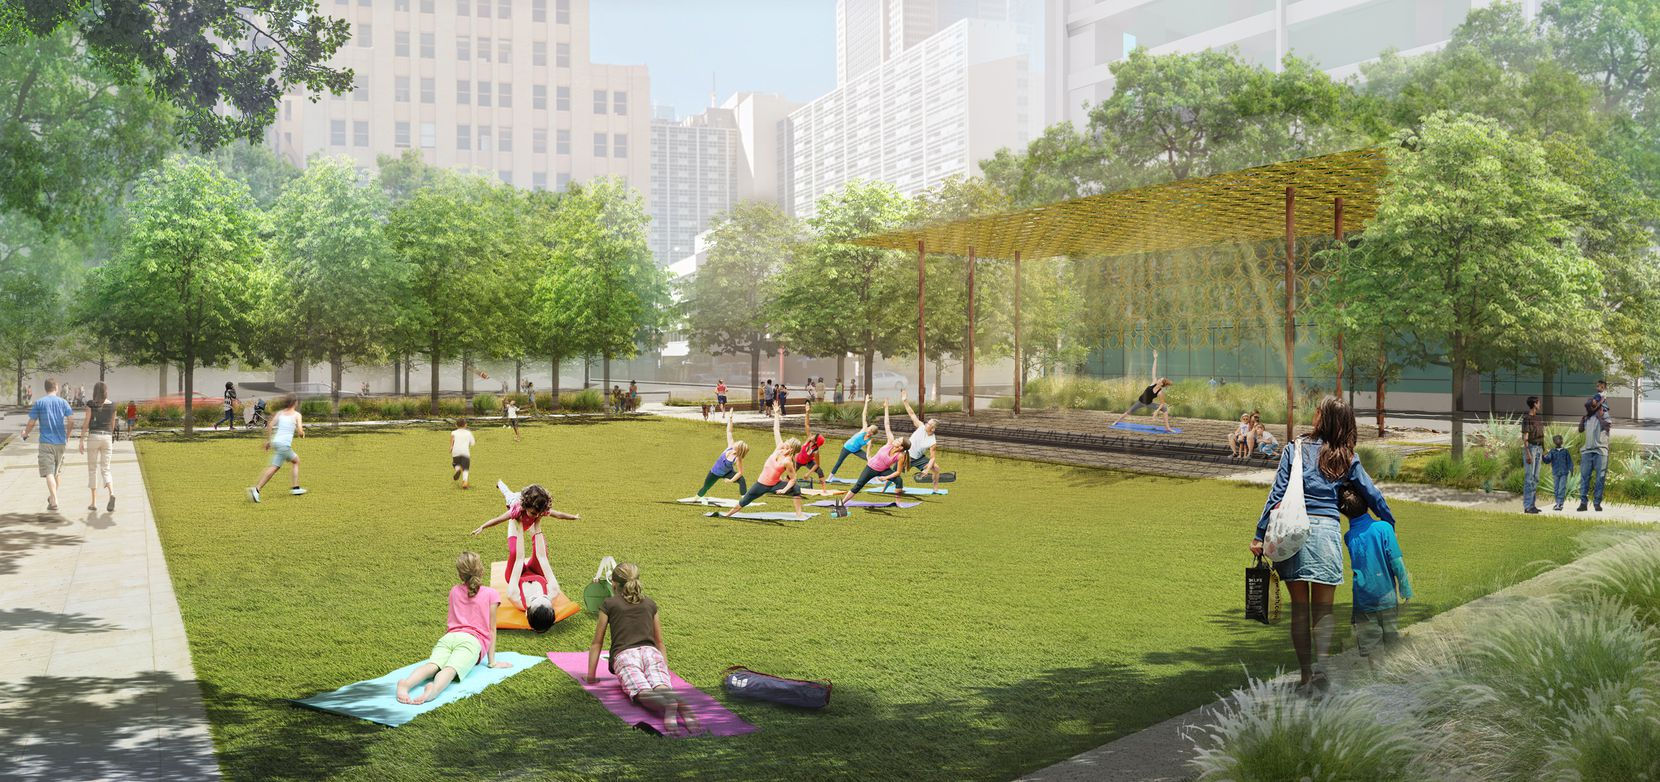 """This rendering shows the """"gold ring"""" shaded pavilion, adjacent to one of Harwood Park's several lawns, which will incorporate the recycled decorative rings from an old parking garage in downtown Dallas."""